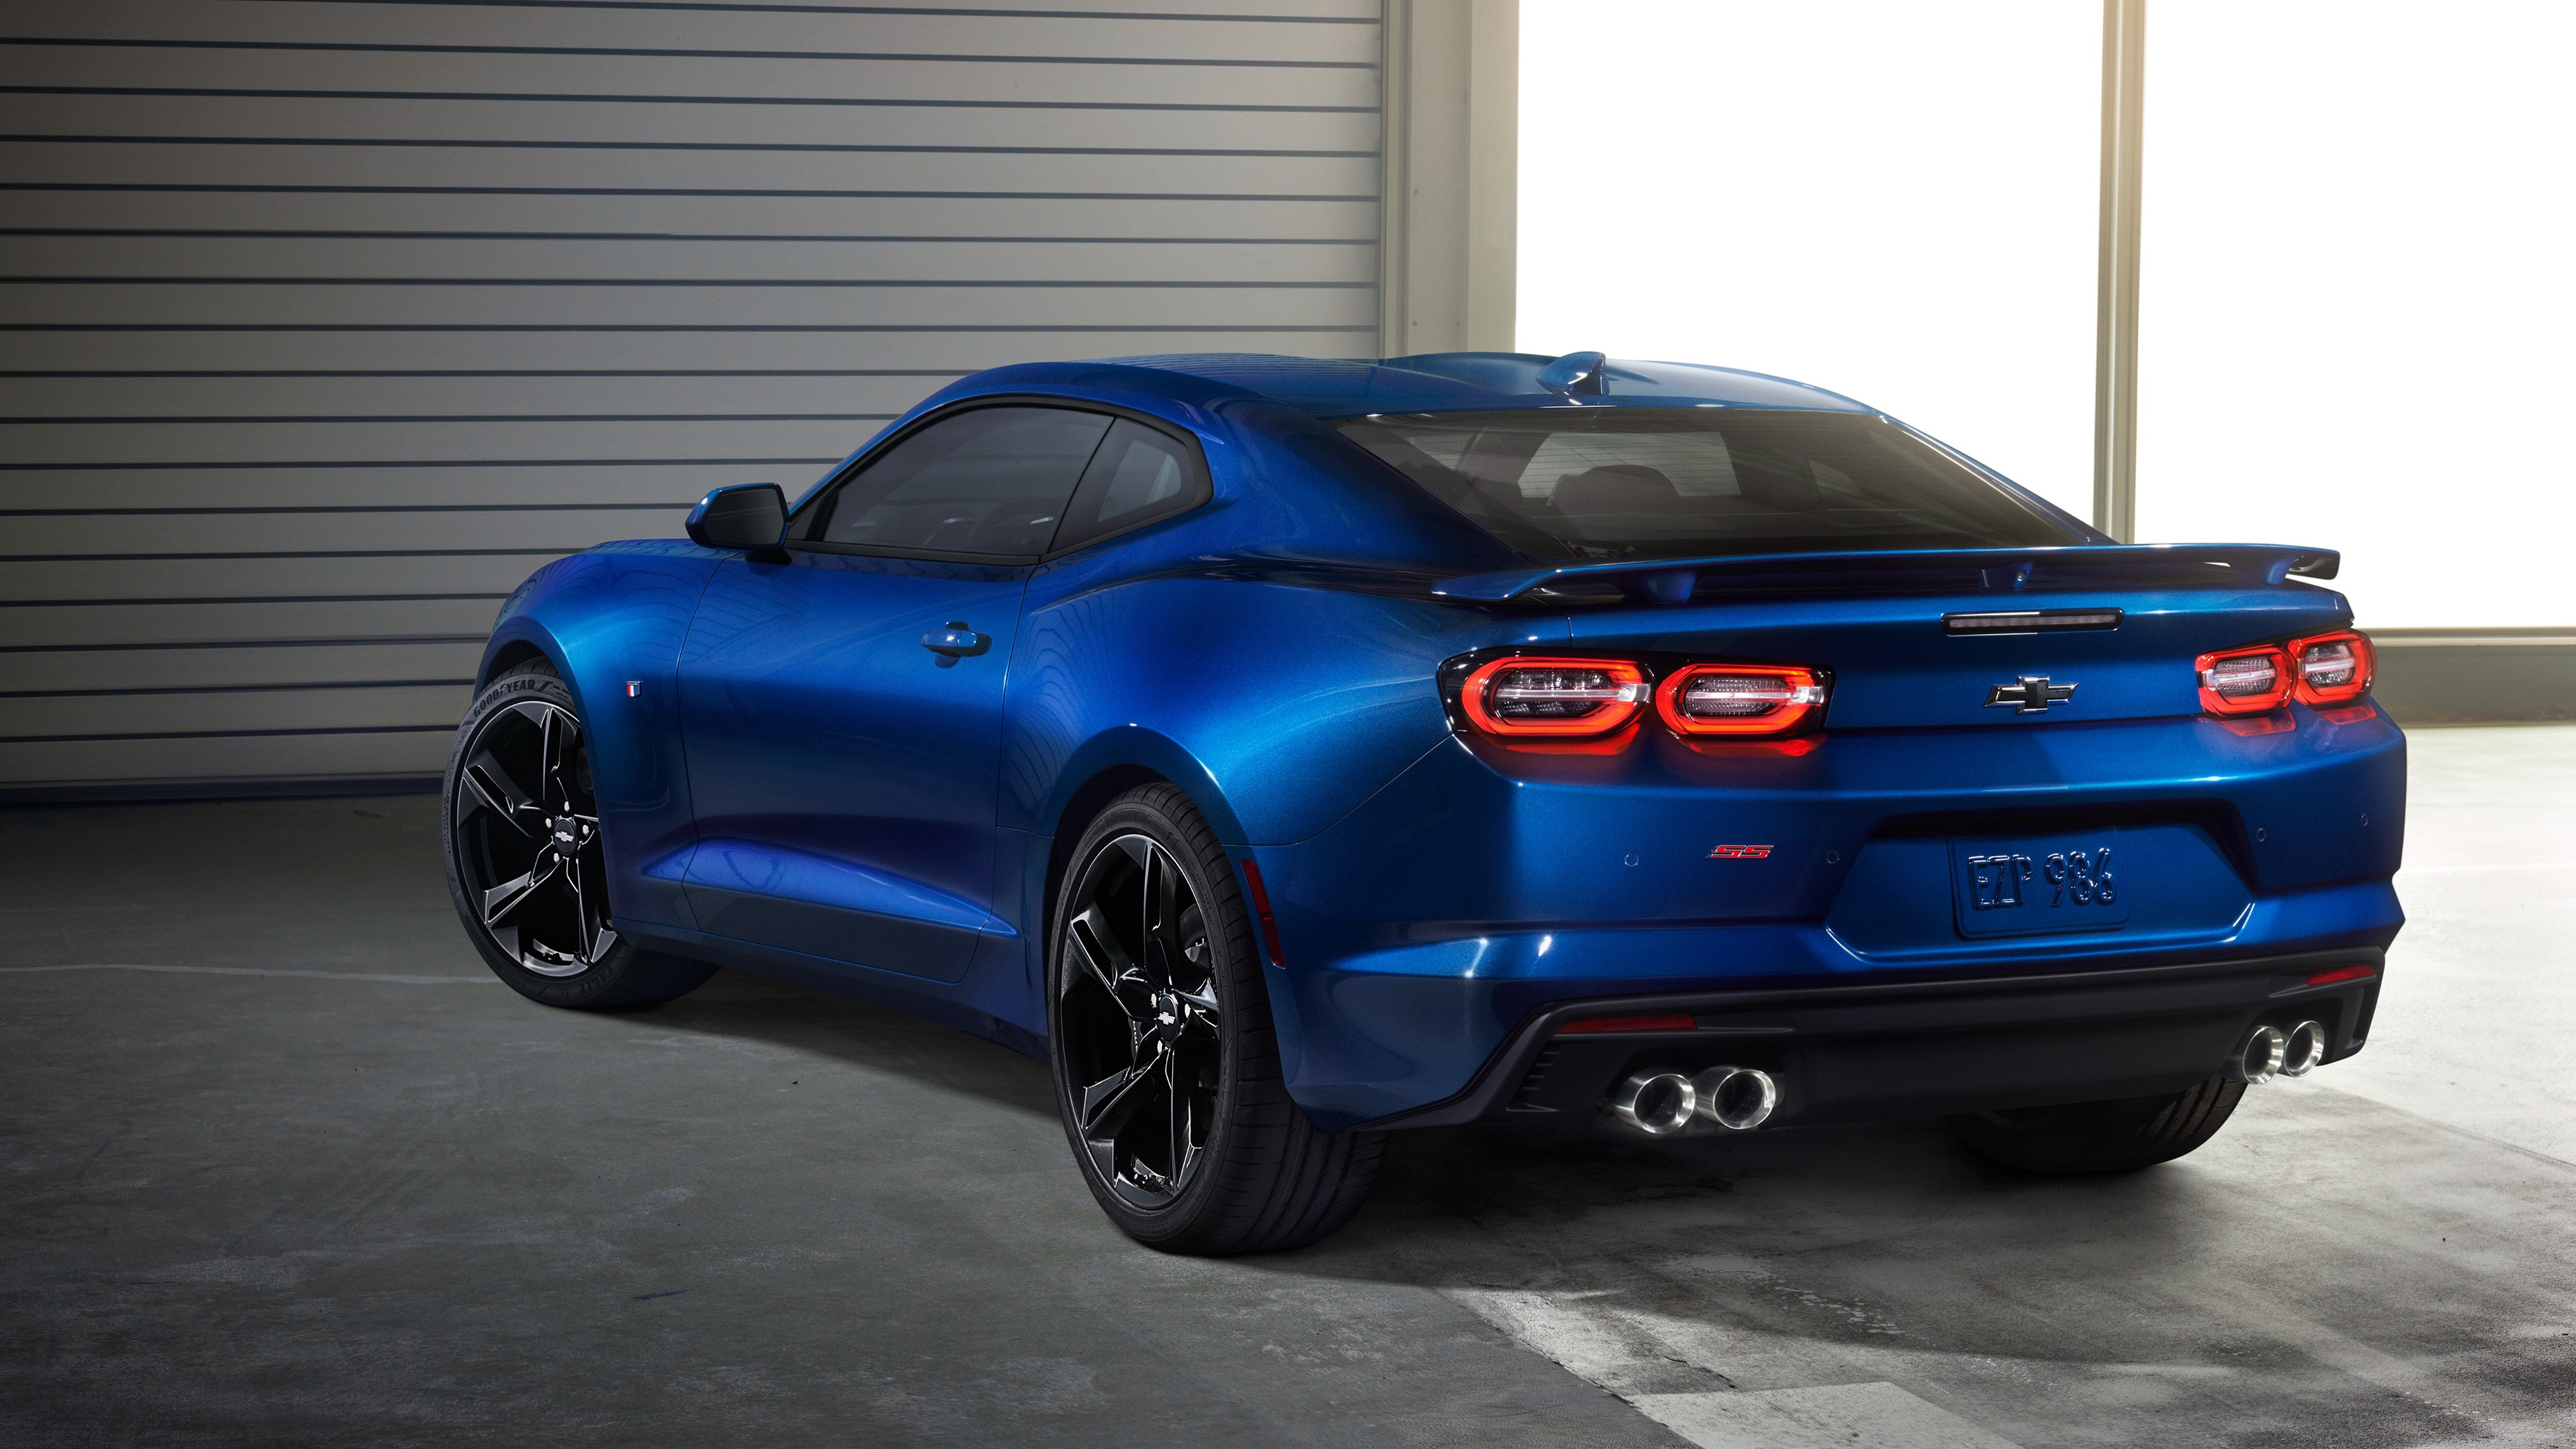 2019 Chevrolet Camaro Ss 4k 2 Wallpaper Hd Car Wallpapers Id 10154